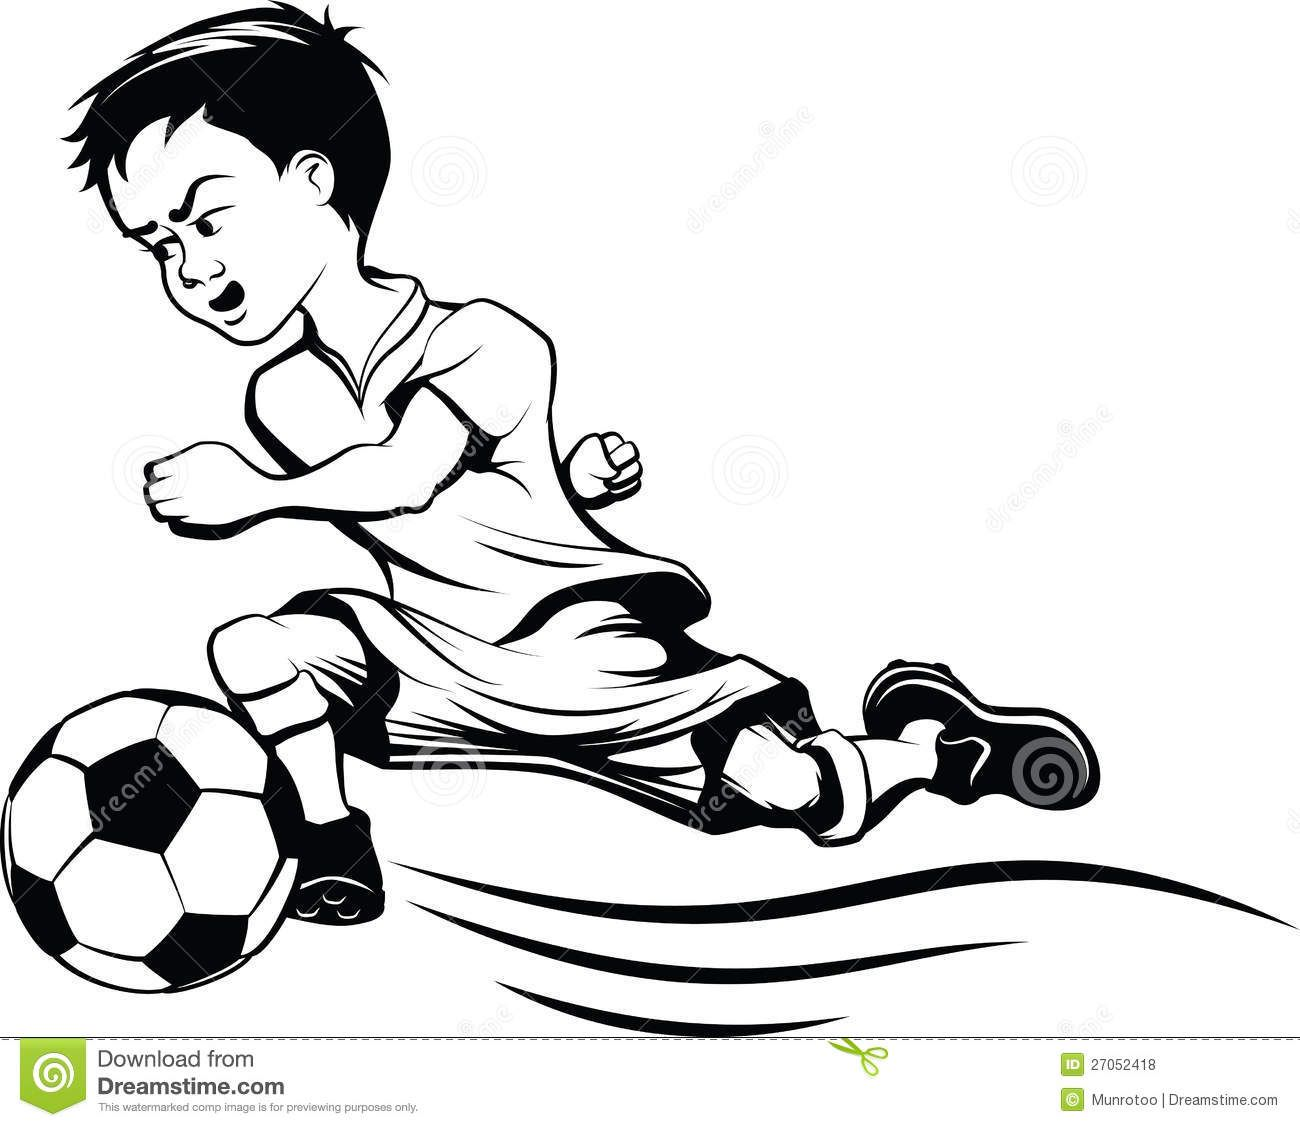 Cute Boy Kicking Soccer Ball Vector Illustration Moral Stories For Kids Stories For Kids Urdu Stories For Kids